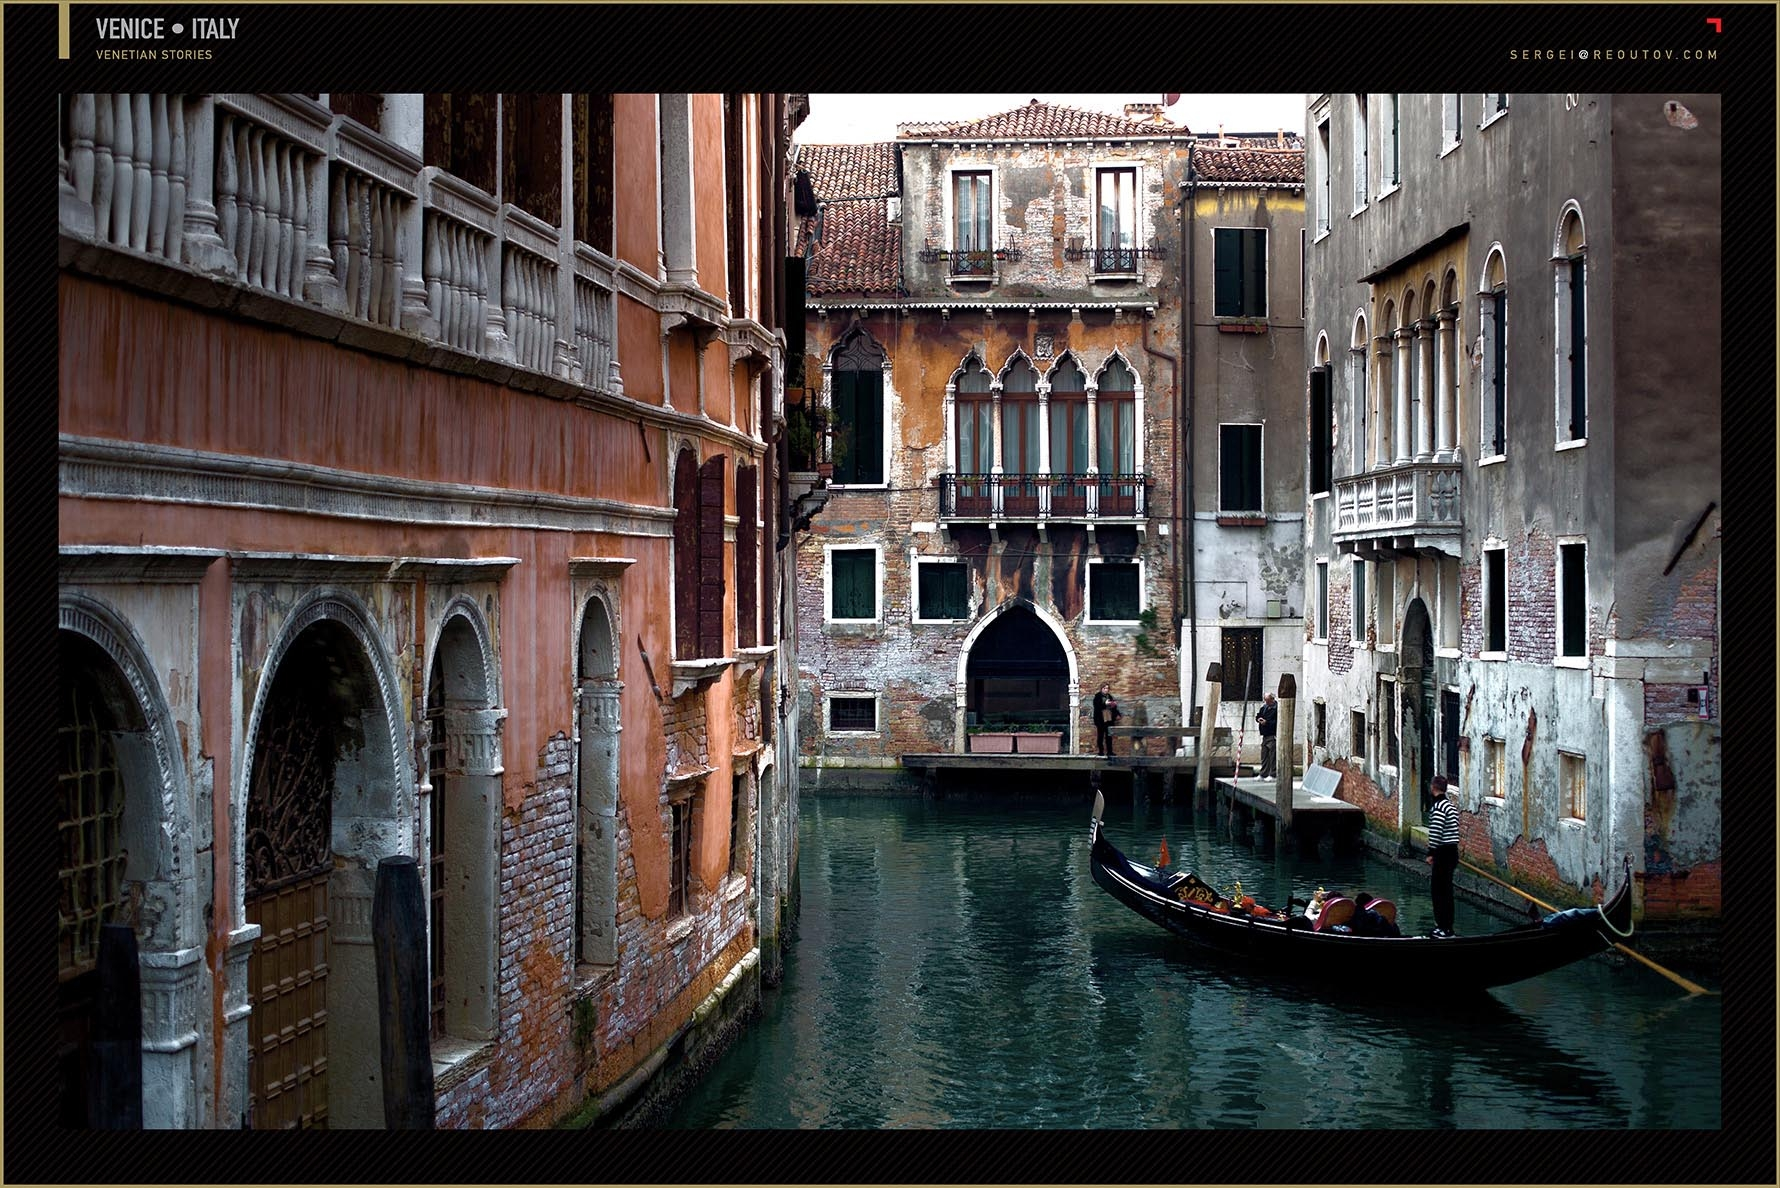 Venetian canals with gondola